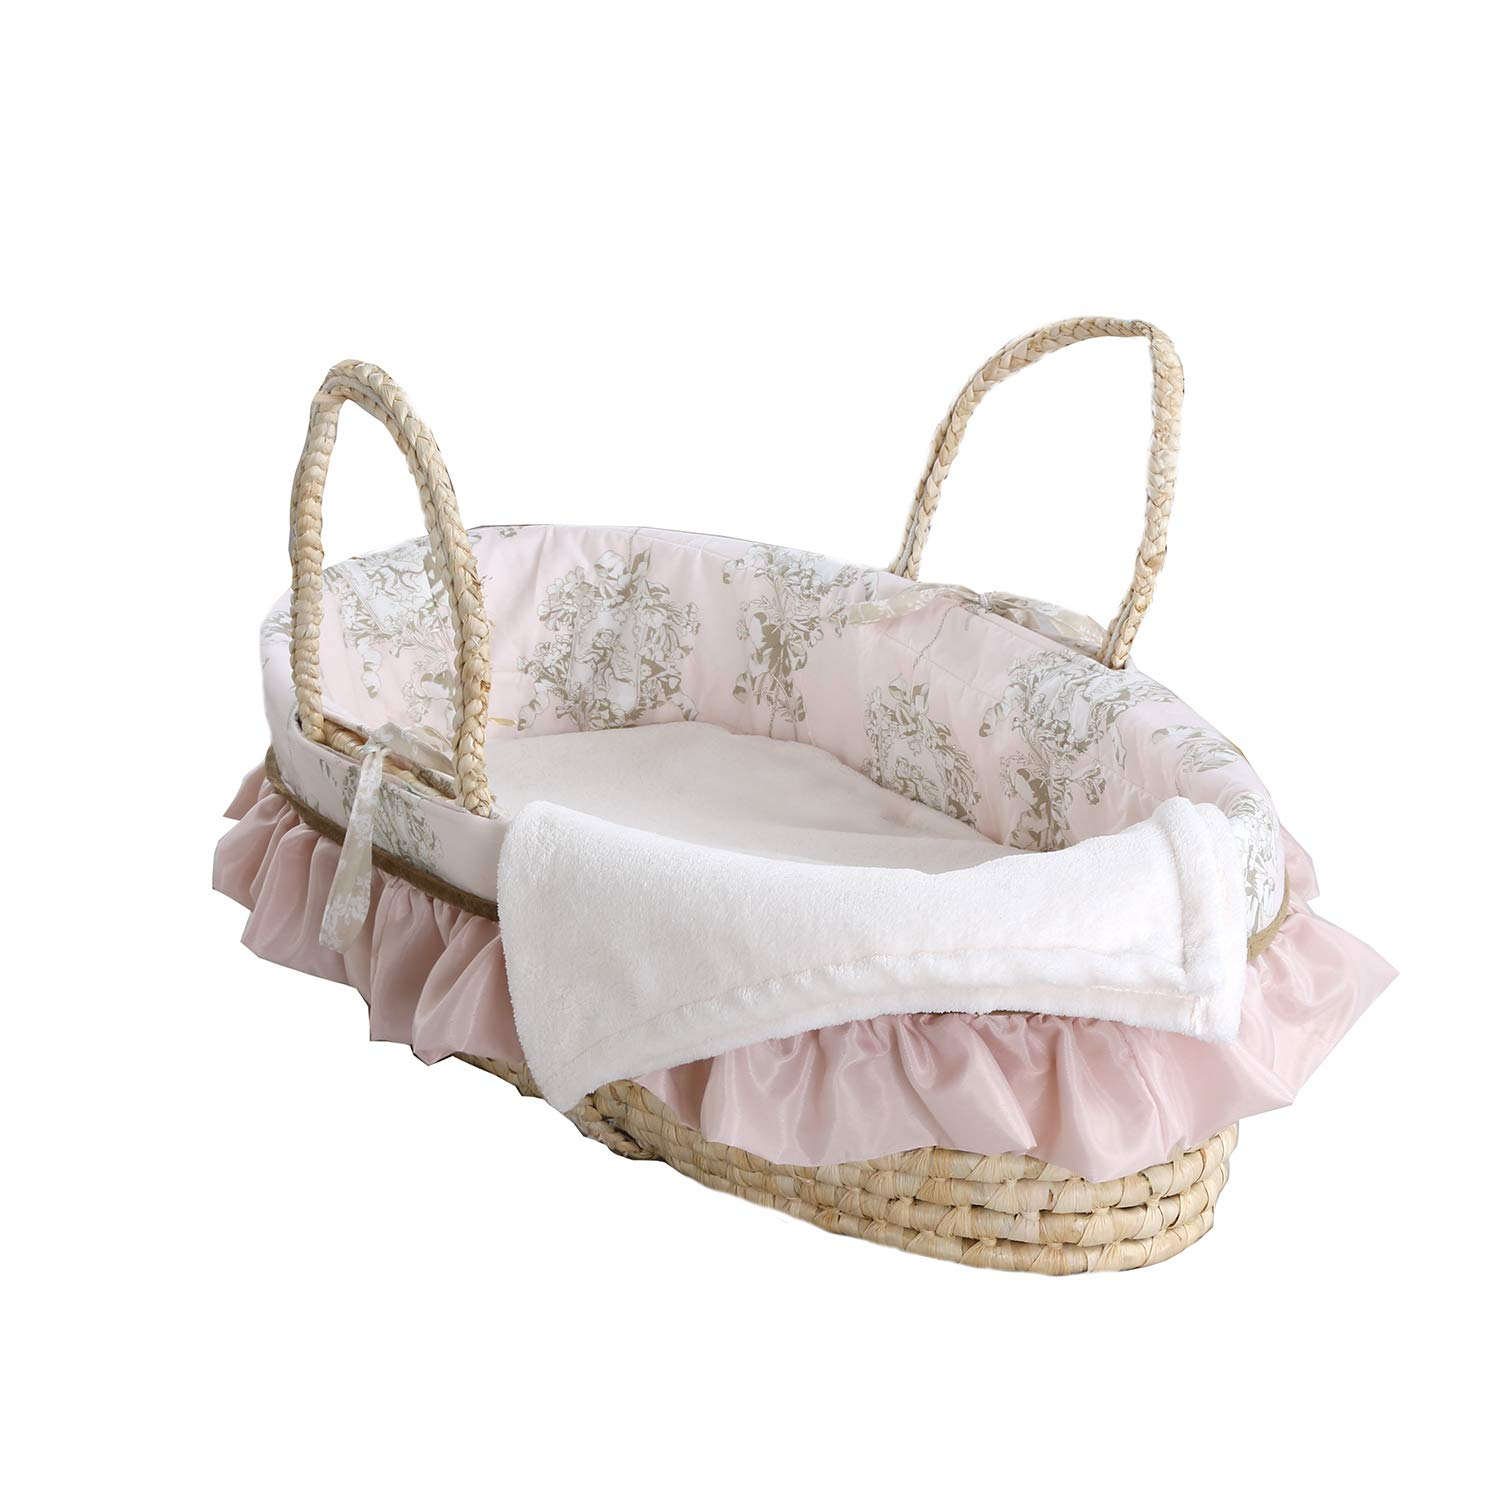 PINK Babies R Us baby Girl Moses Basket Starter Set 2 Fitted Sheets 2 Blankets